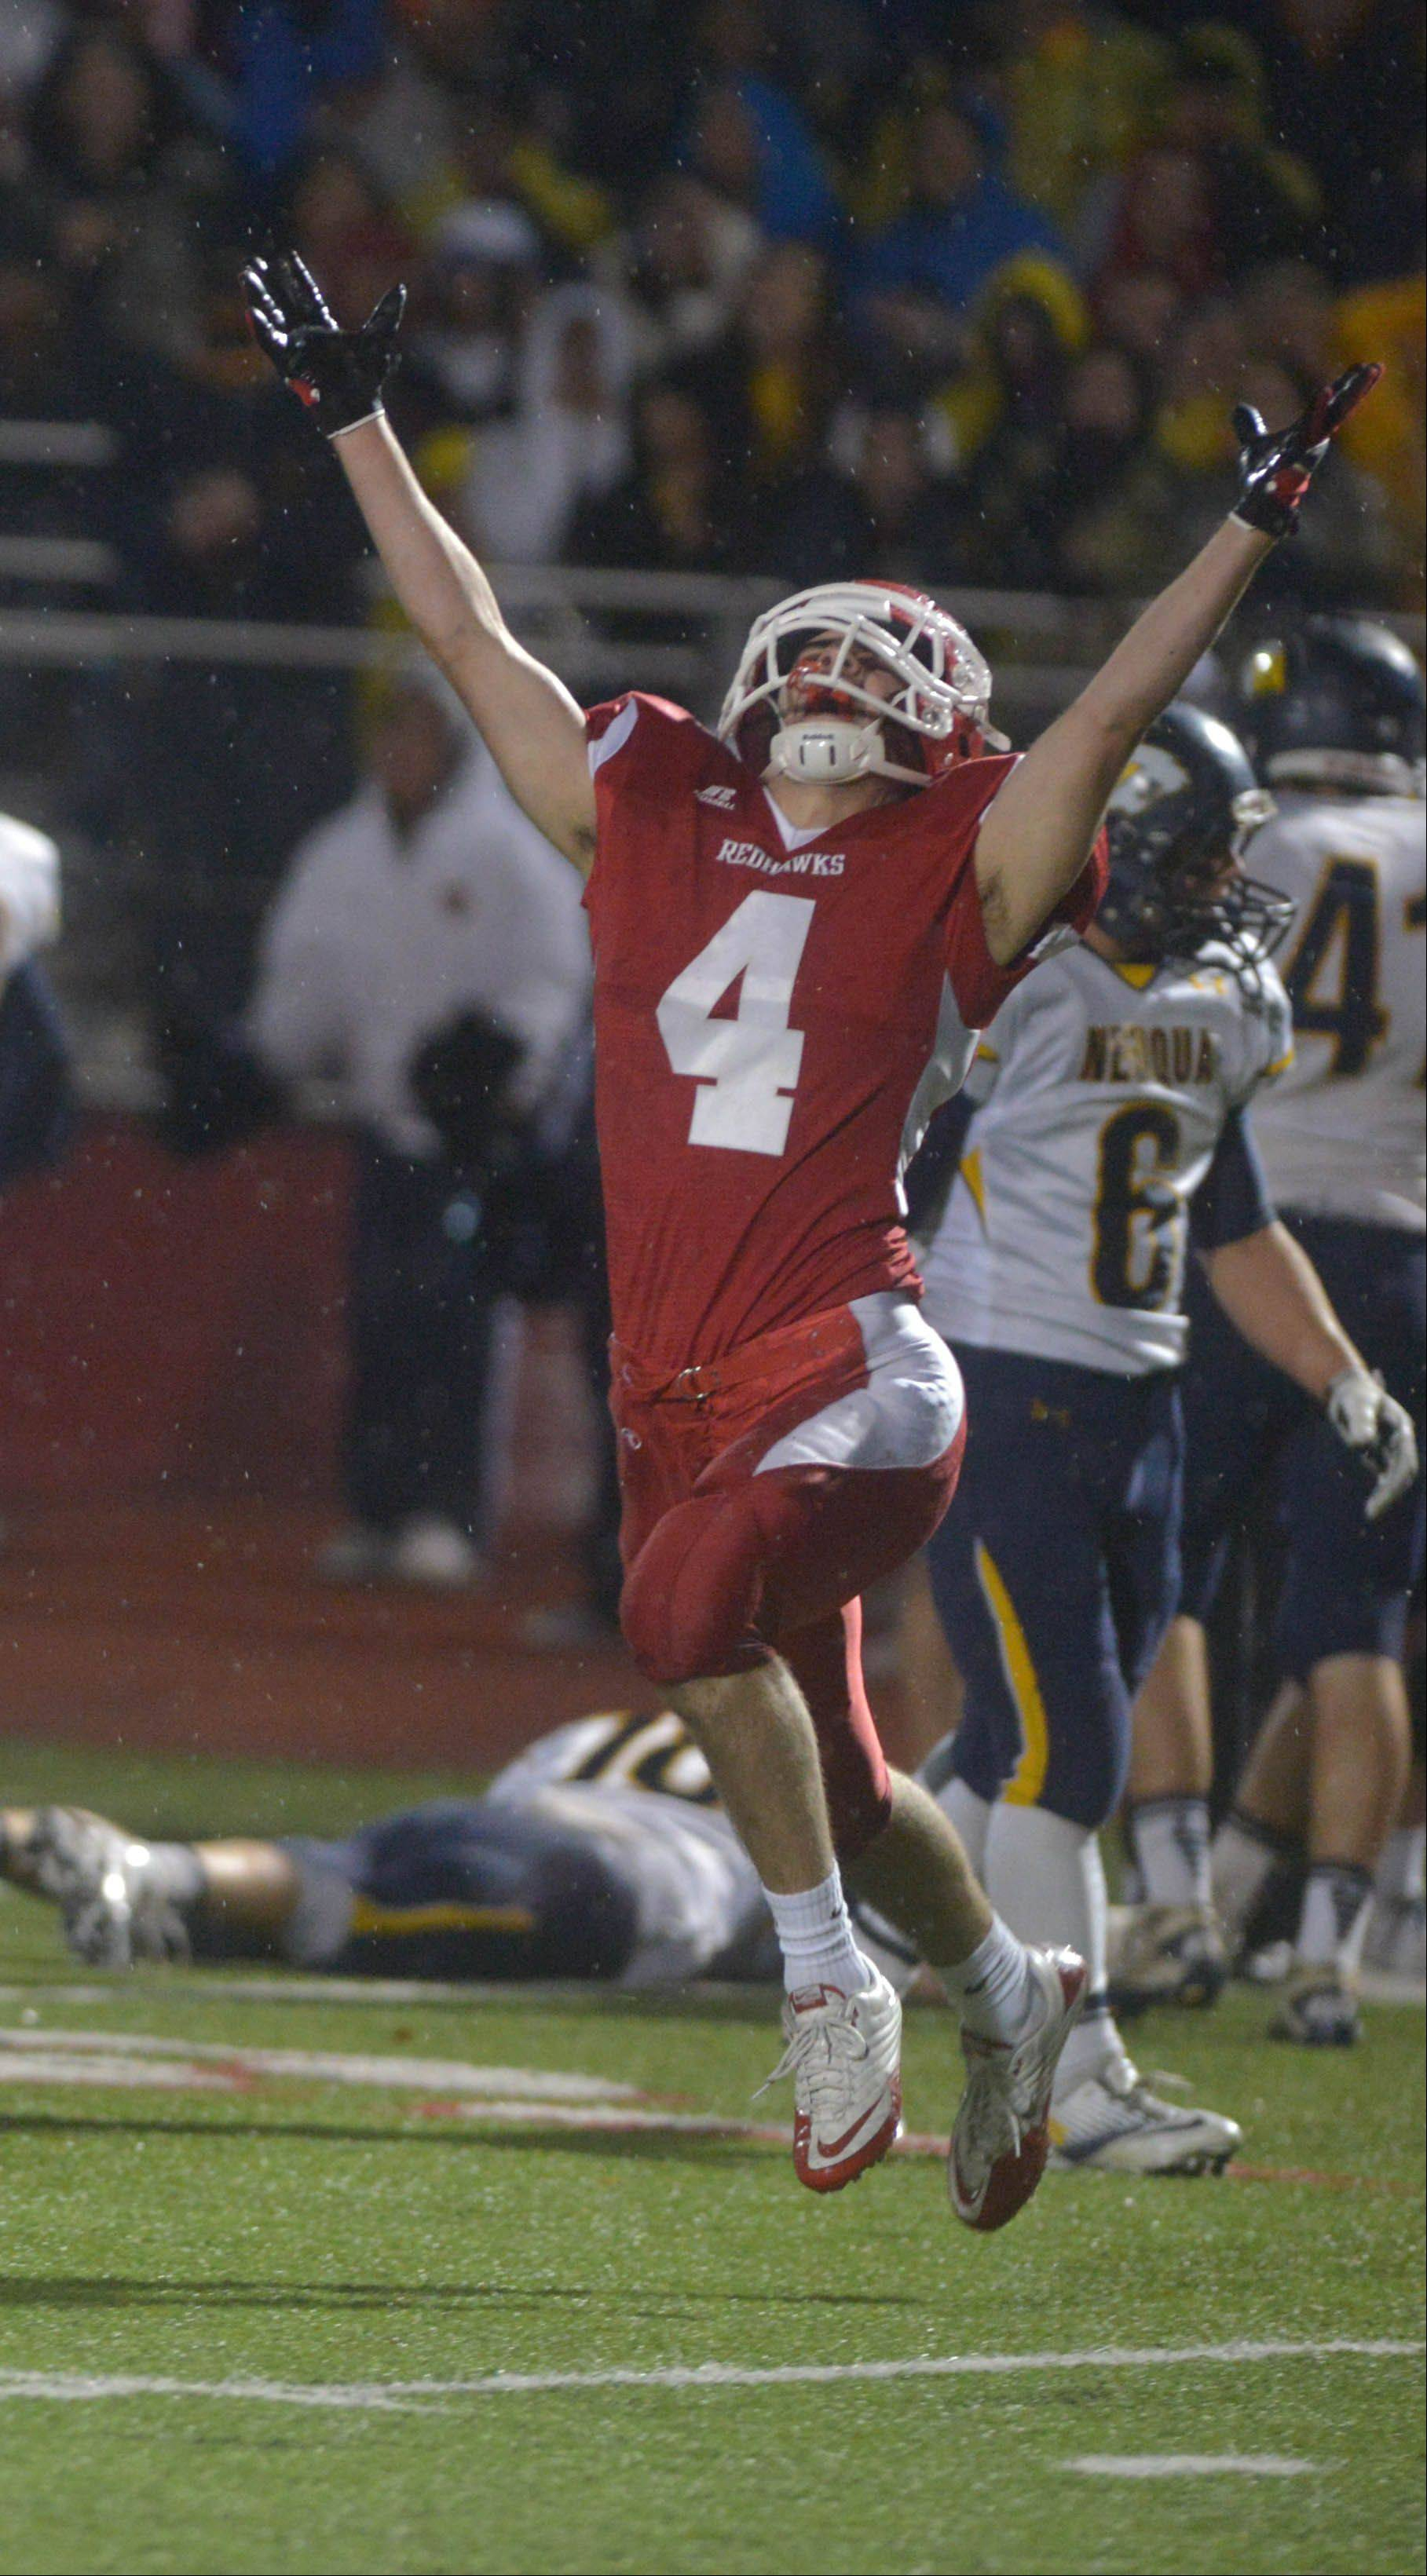 Naperville Central's Joe Nussbaum celebrates during Saturday's football playoff game against Neuqua Valley.